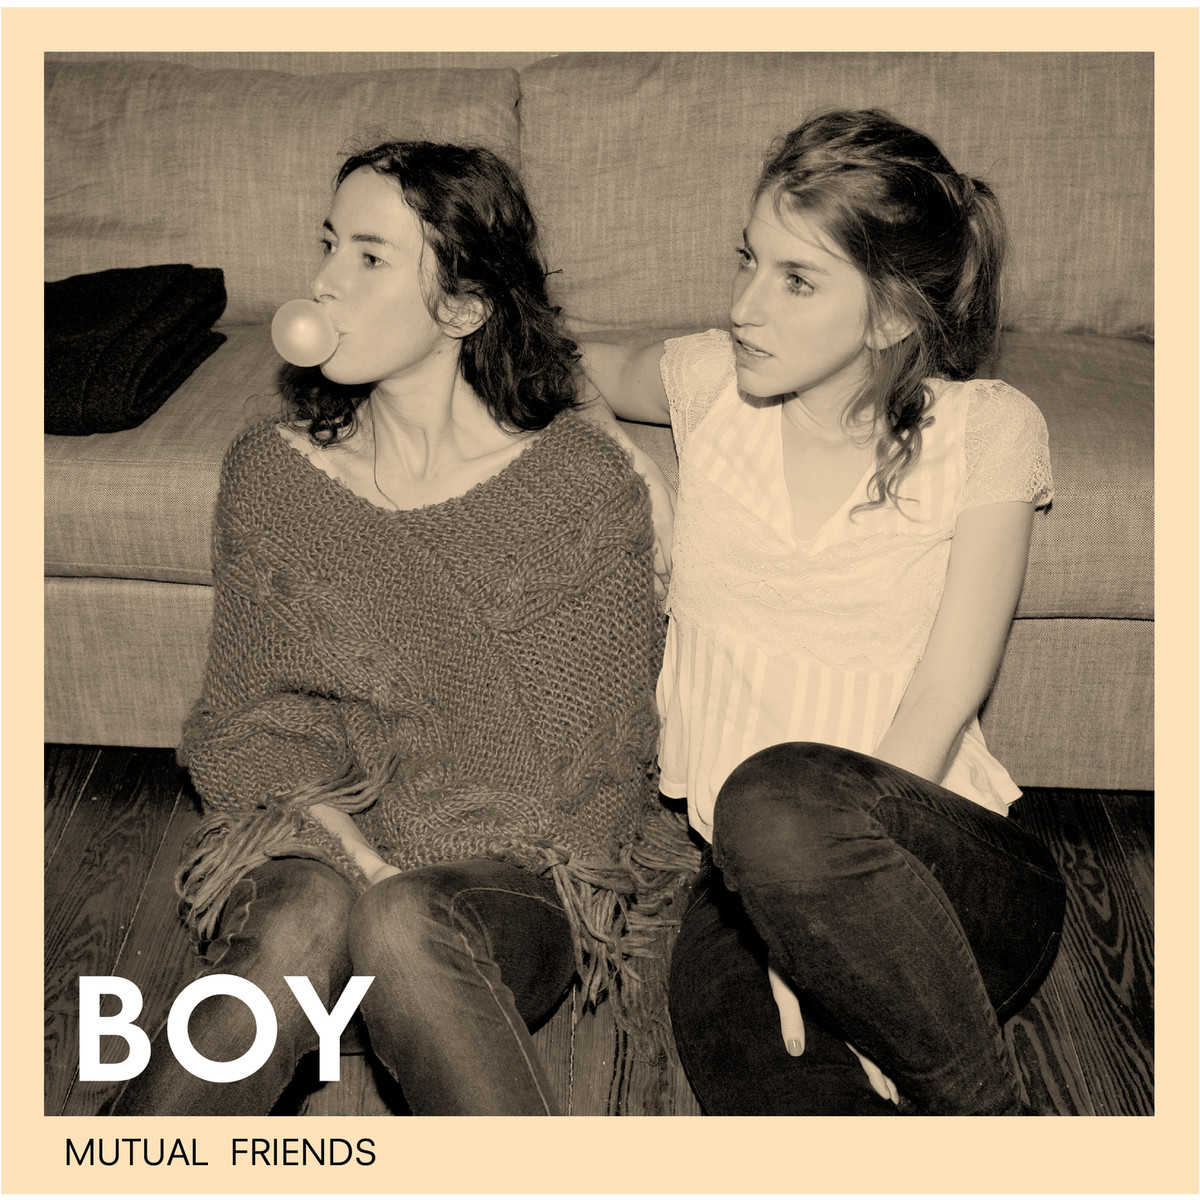 Capa do álbum Mutual Friends, da banda BOY